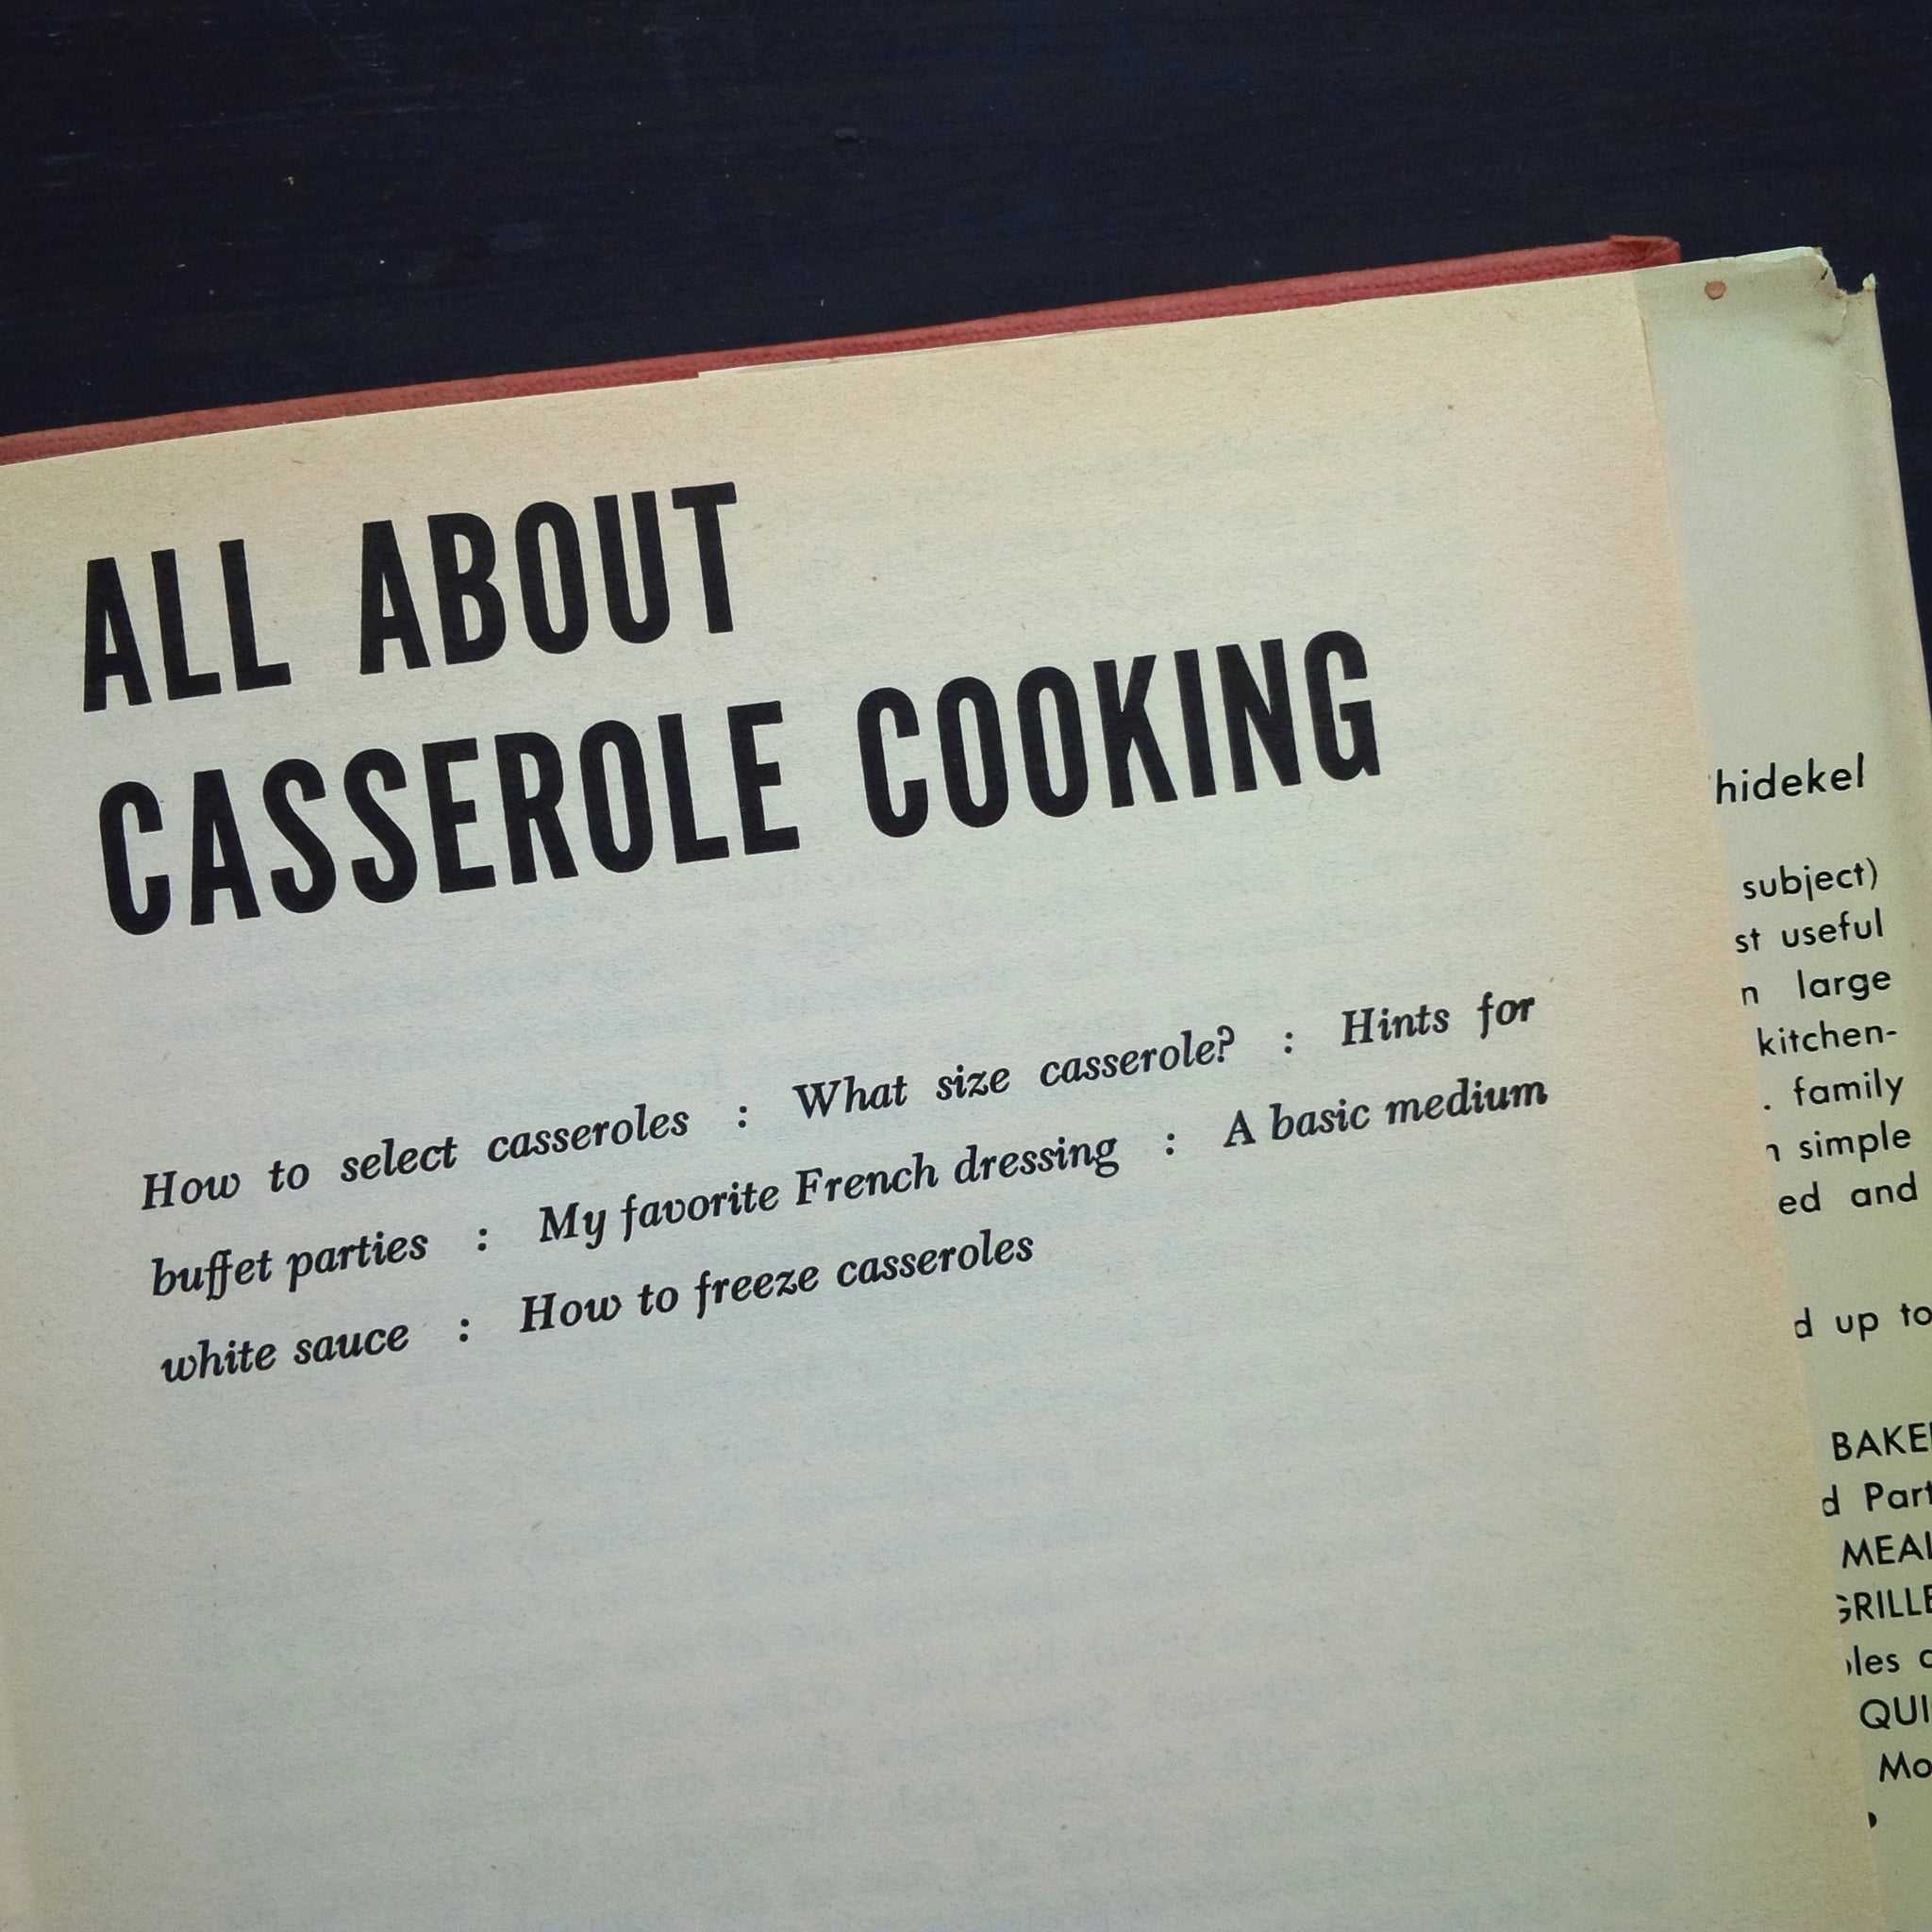 Casserole Specialties - Nedda Casson Anders - 1950s Casserole Cookbook